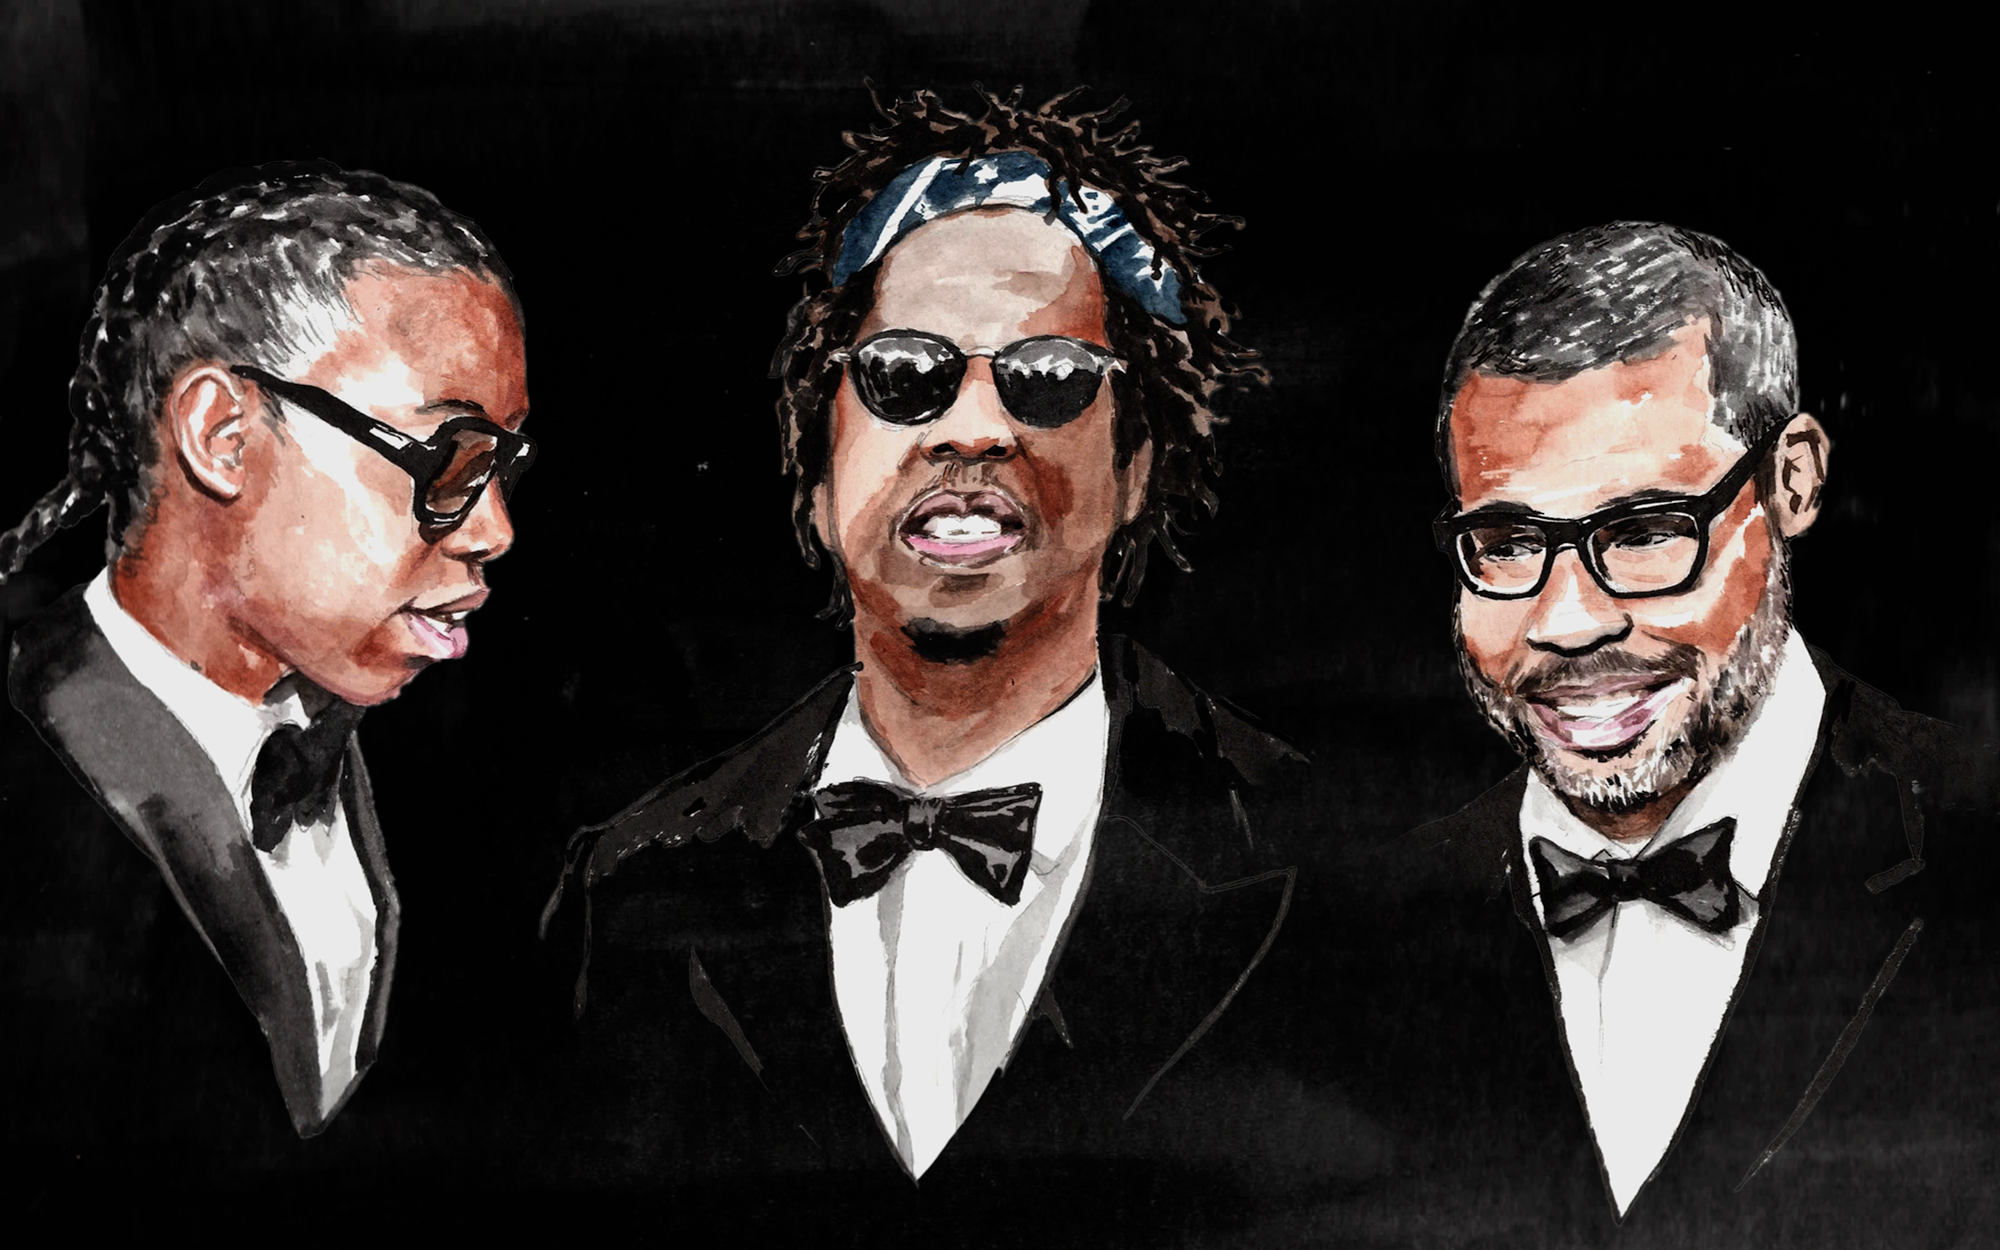 From left to right, an illustration of Jeremy O. Harris, Jay-Z, and Jordan Peele.